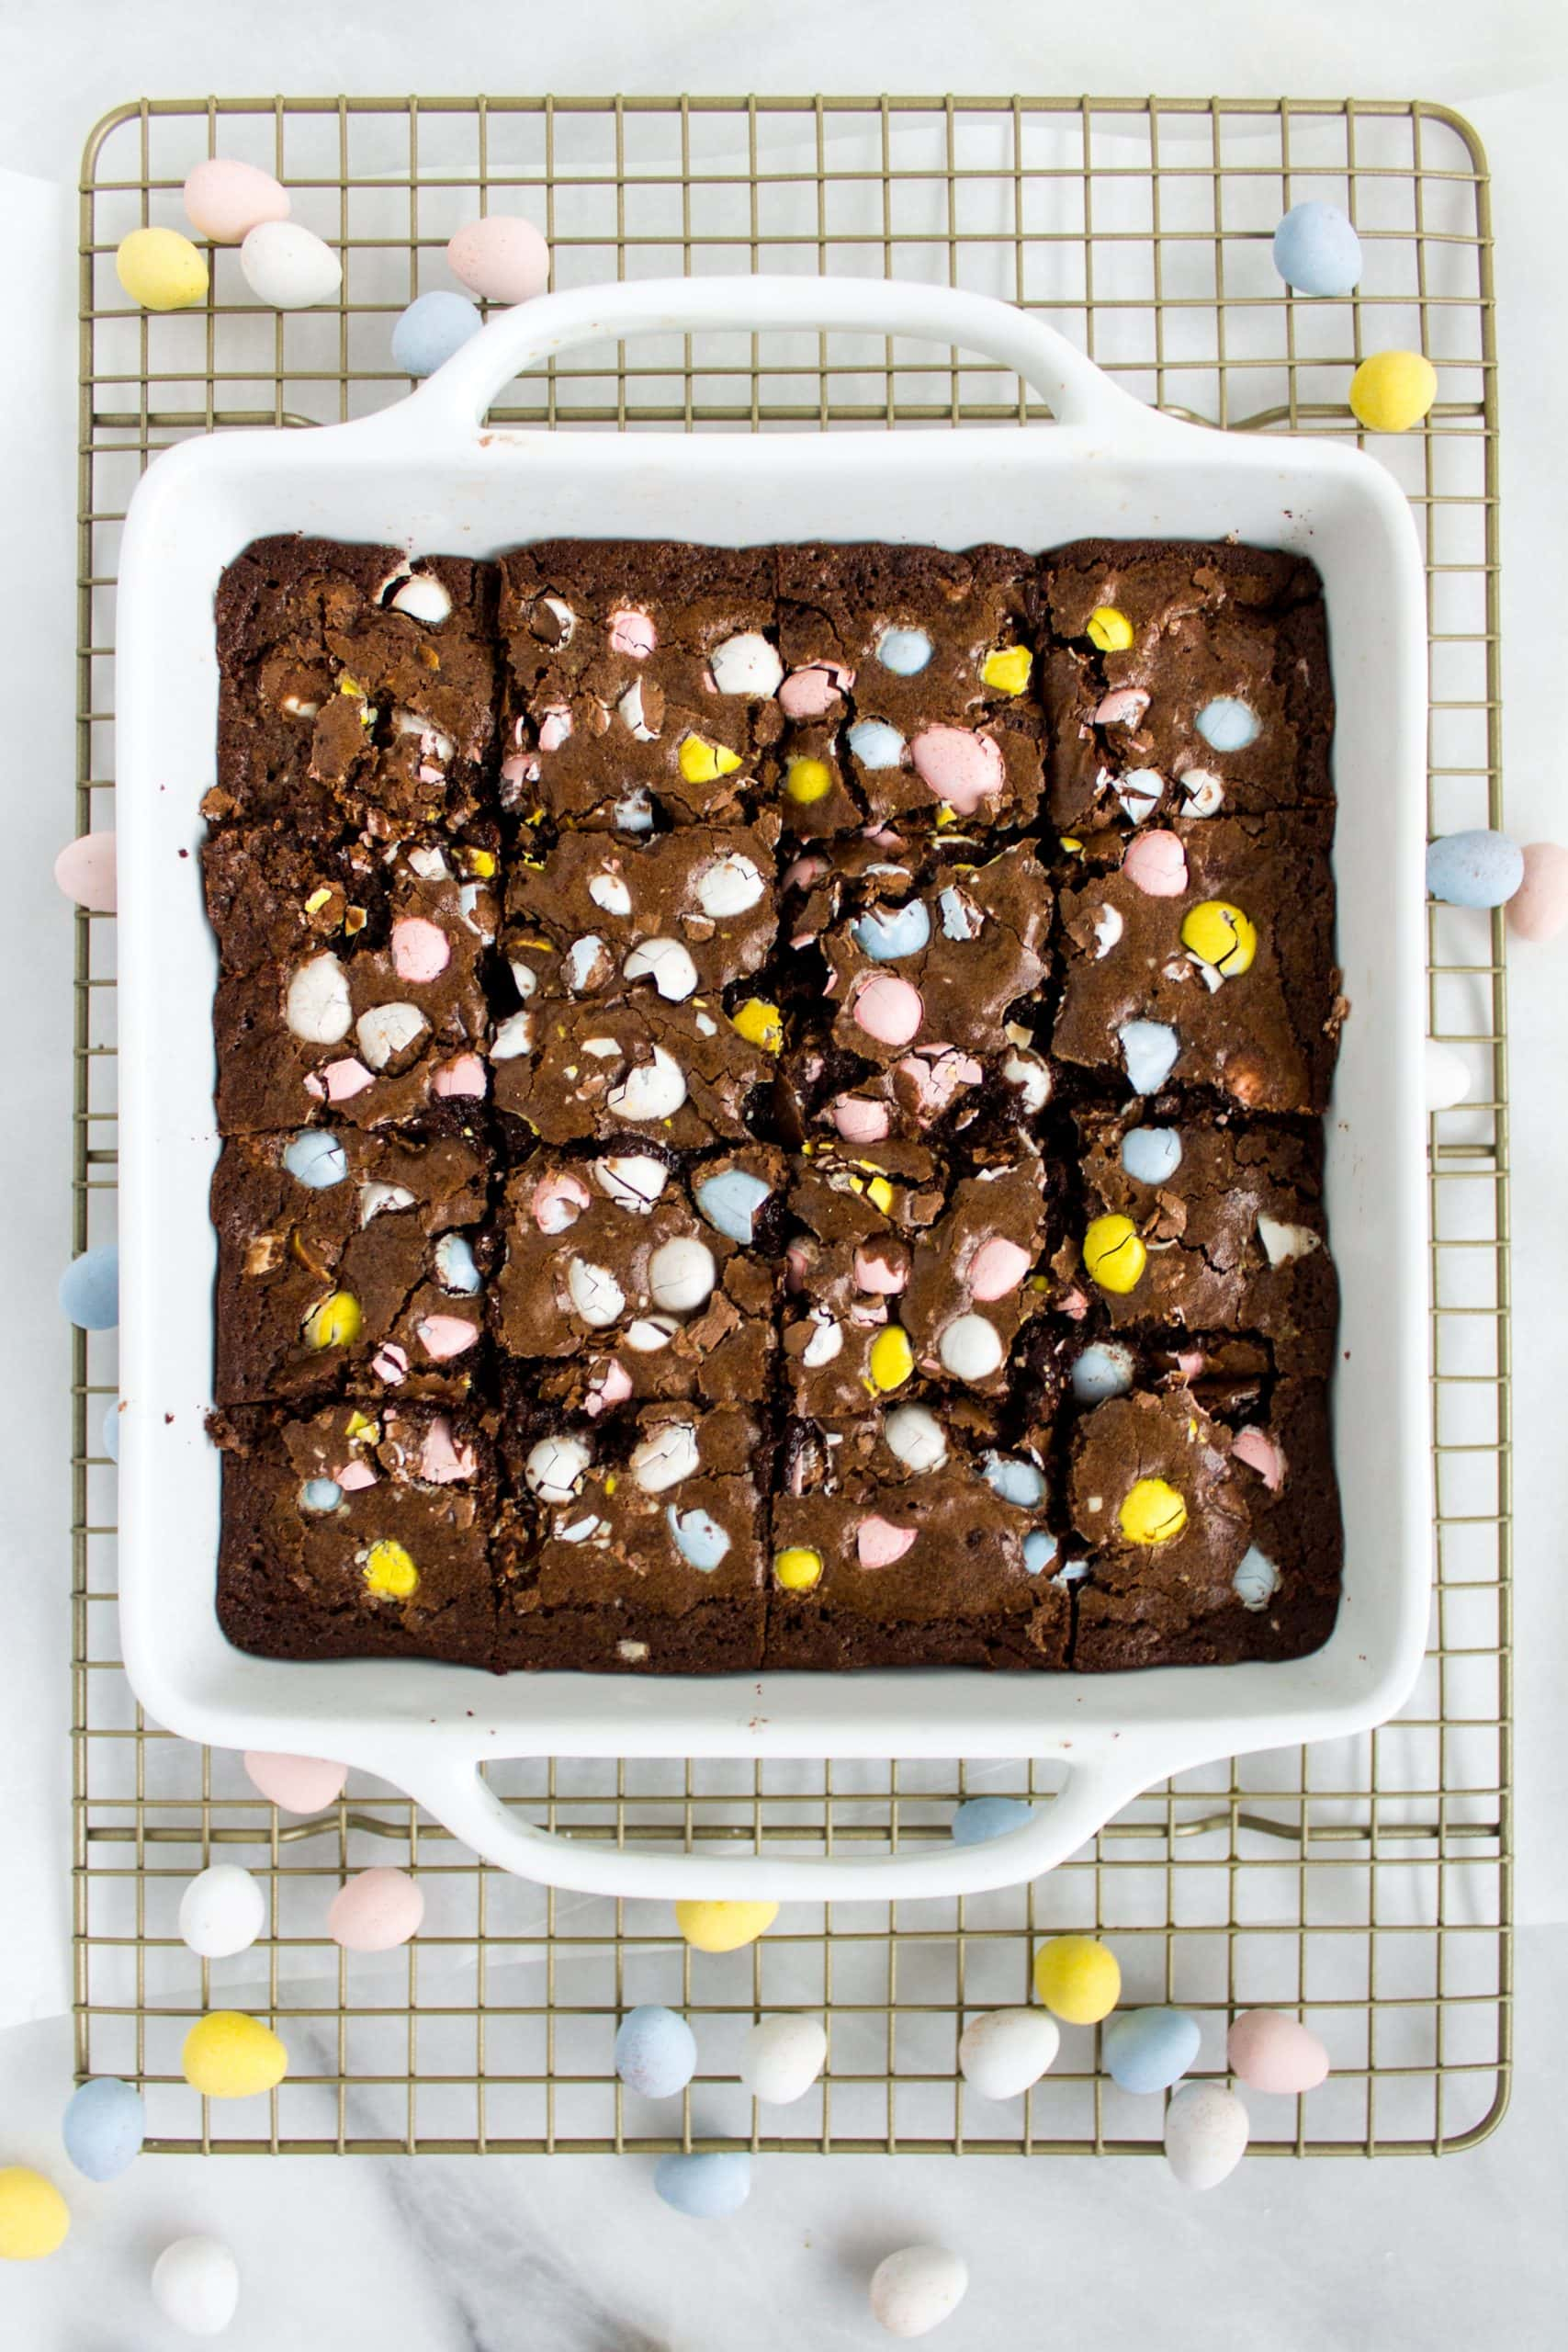 A square pan full of brownies that are full of chopped up cadbury mini eggs.